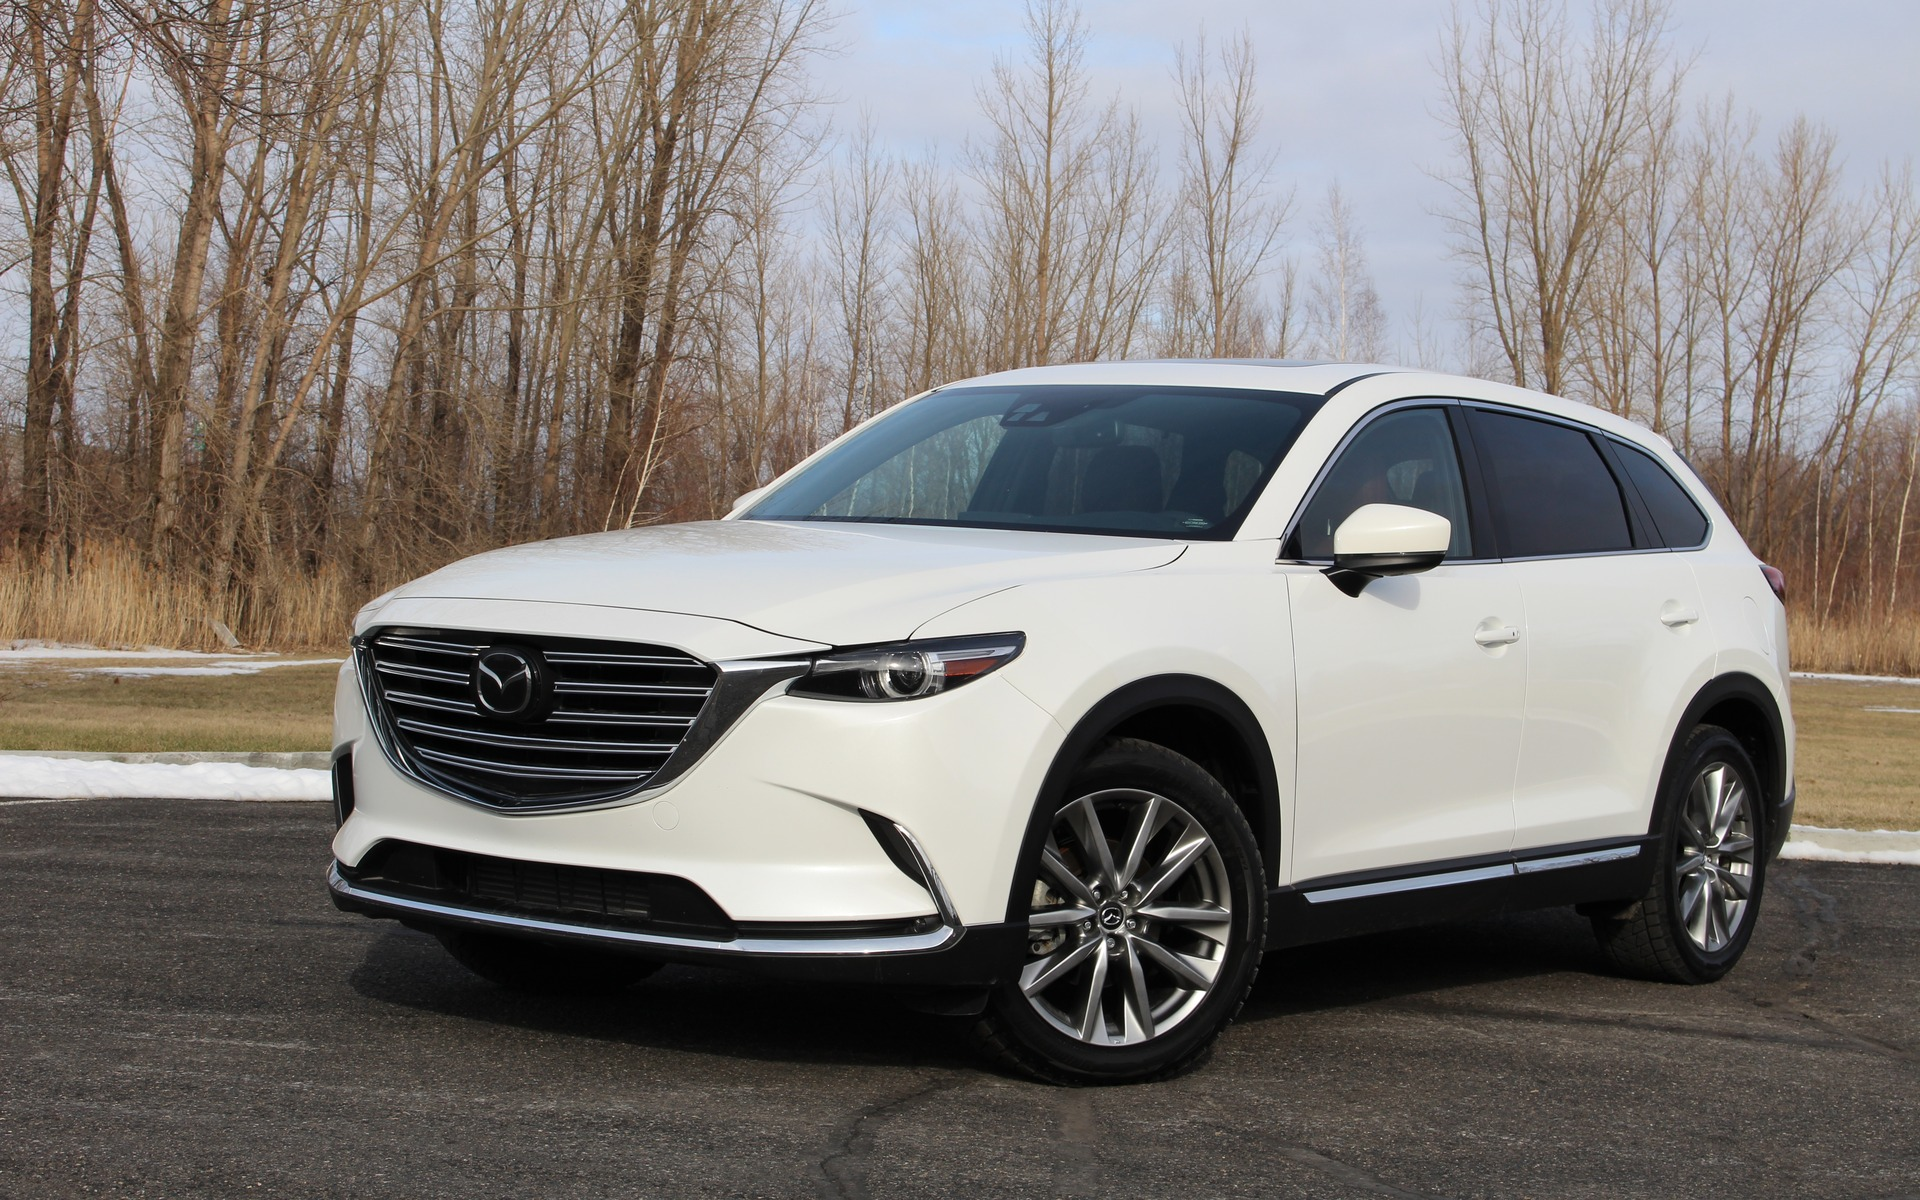 2017 mazda cx-9: style and agility - the car guide